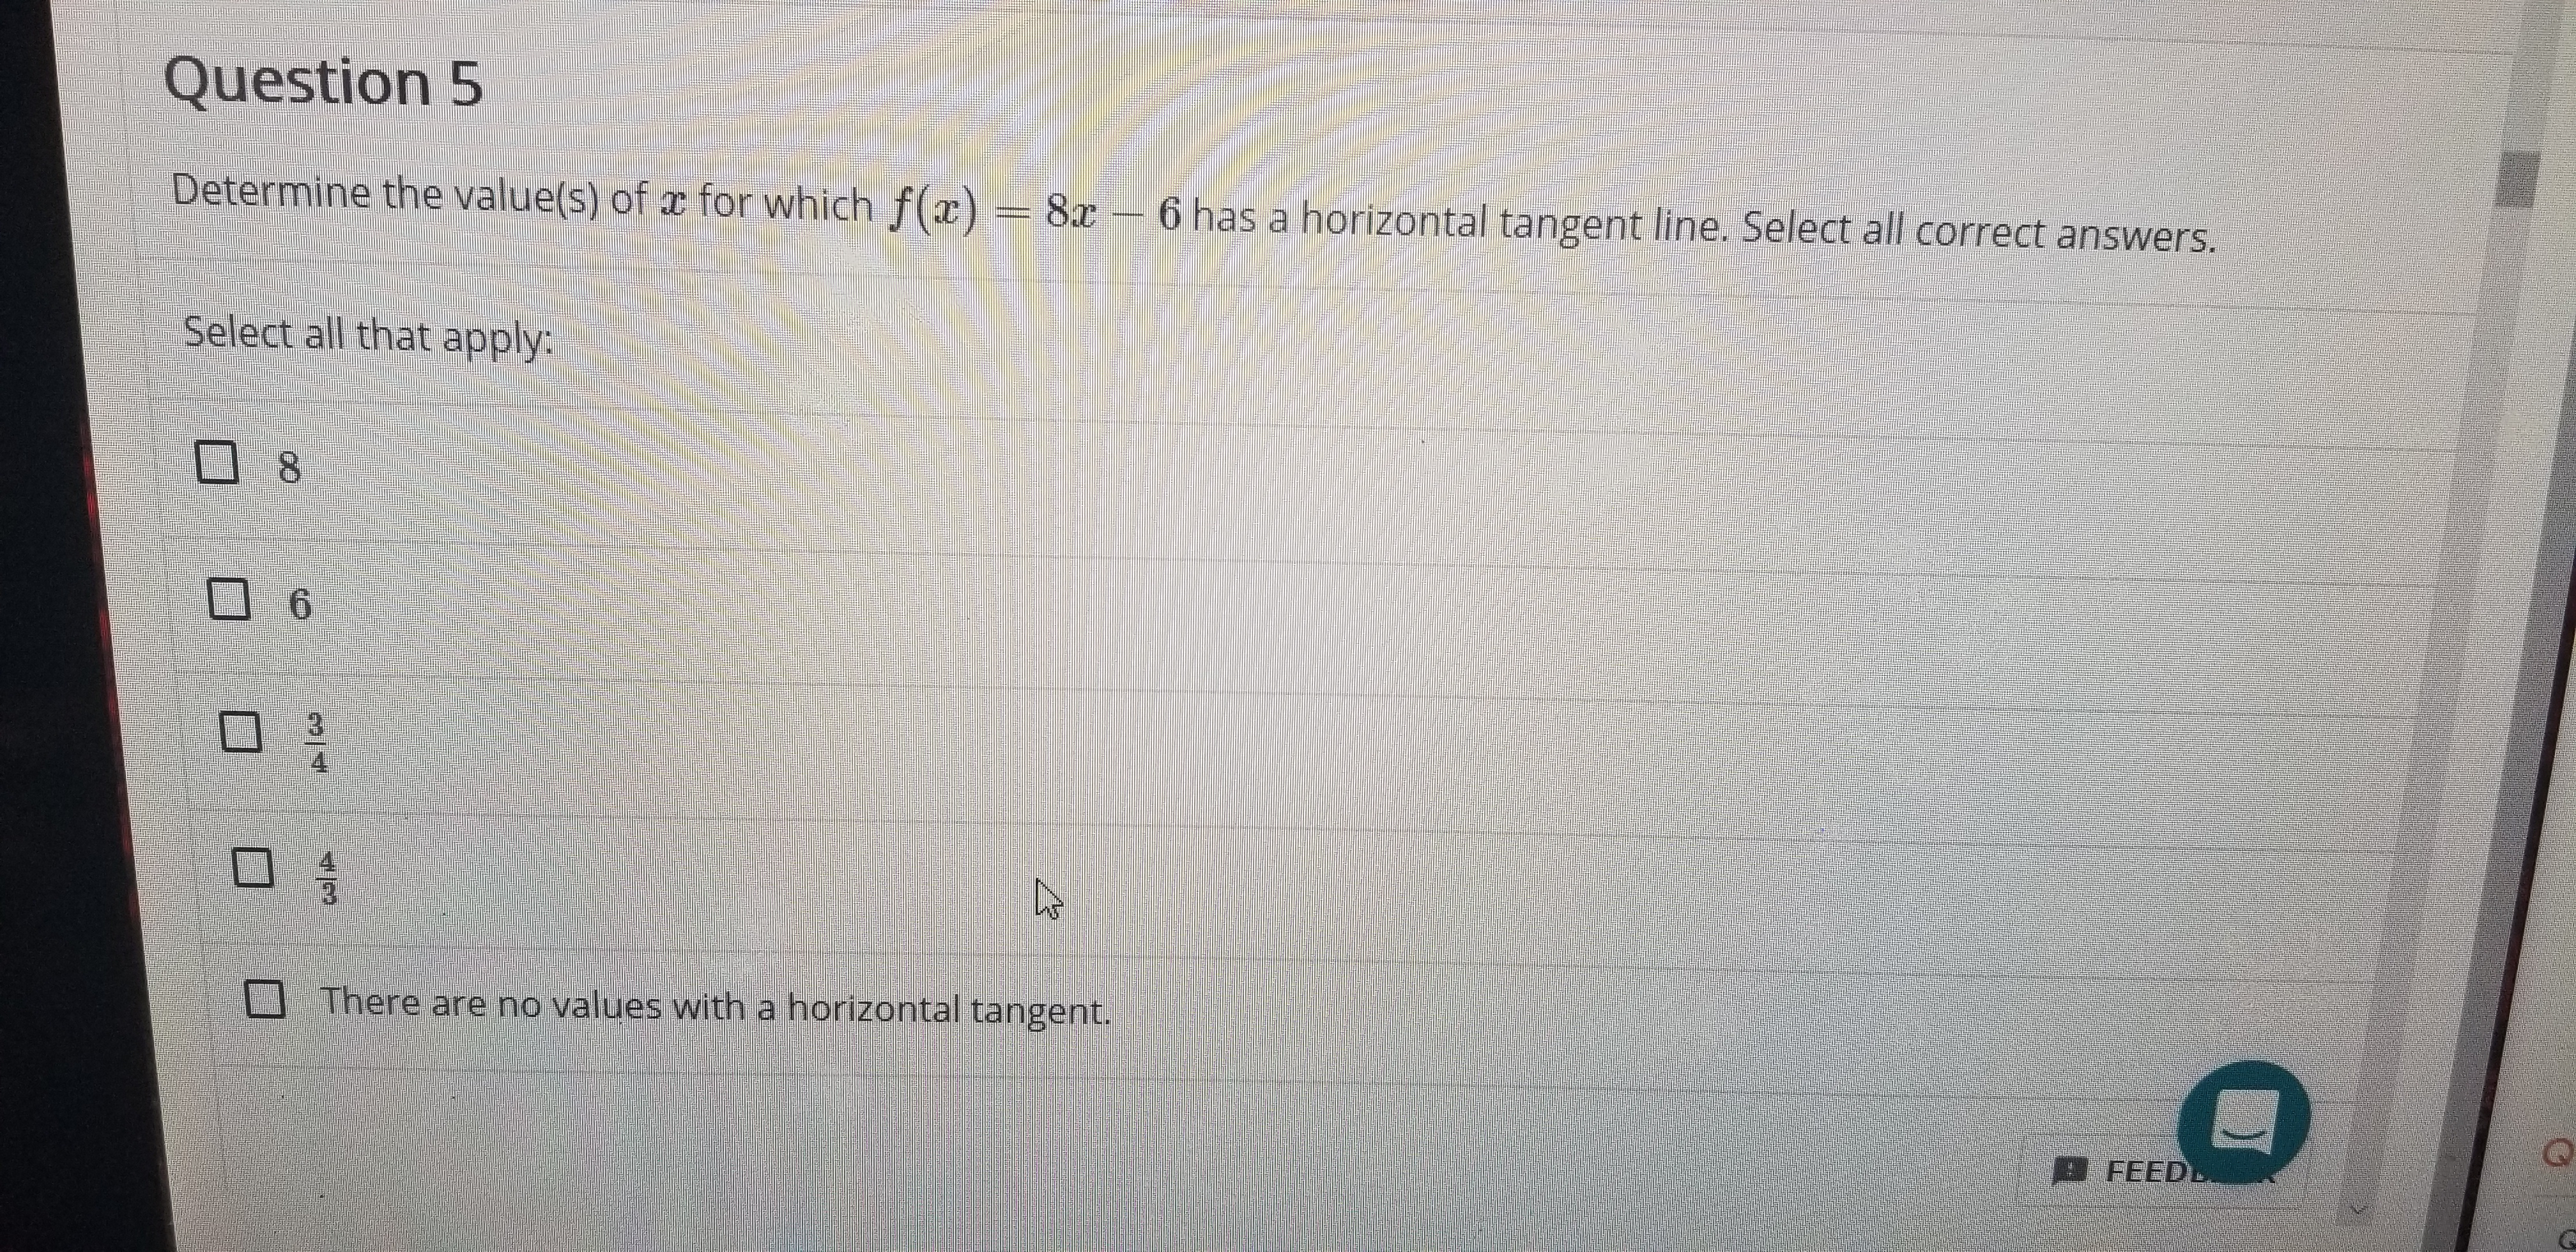 Question 5 Determine the value(s) of r for which f(x) 8x- 6 has a horizontal tangent line. Select all correct answers. Select all that apply 8 6 4 There are no values with a horizontal tangent. Q FEEDL